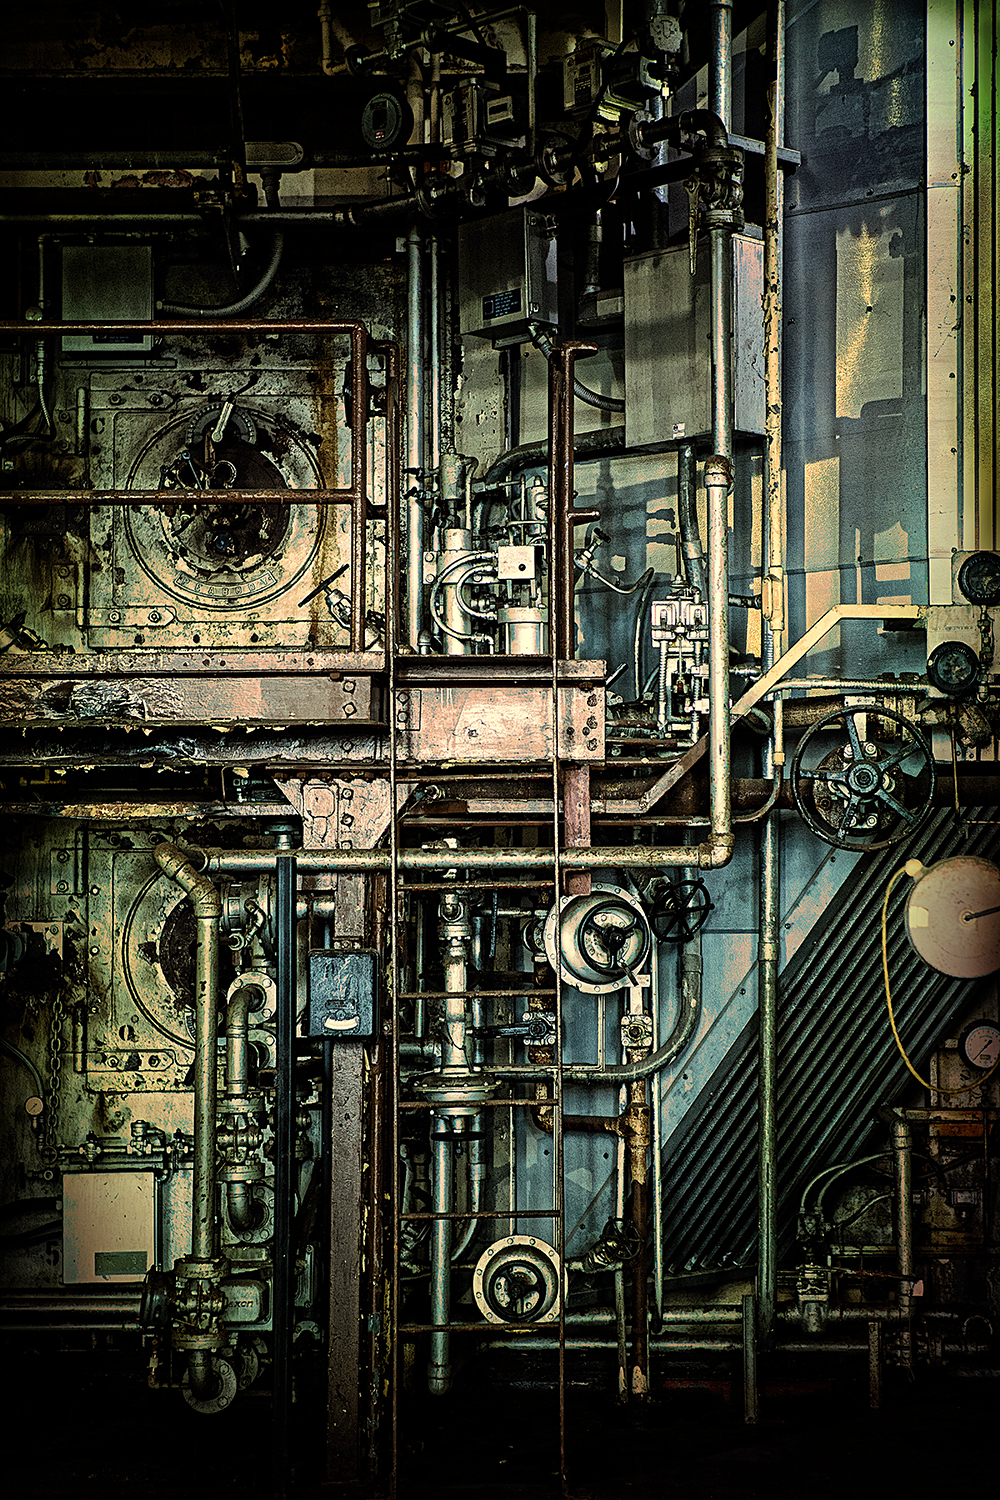 The Old Power Plant 4_J.MILHOMME.jpg